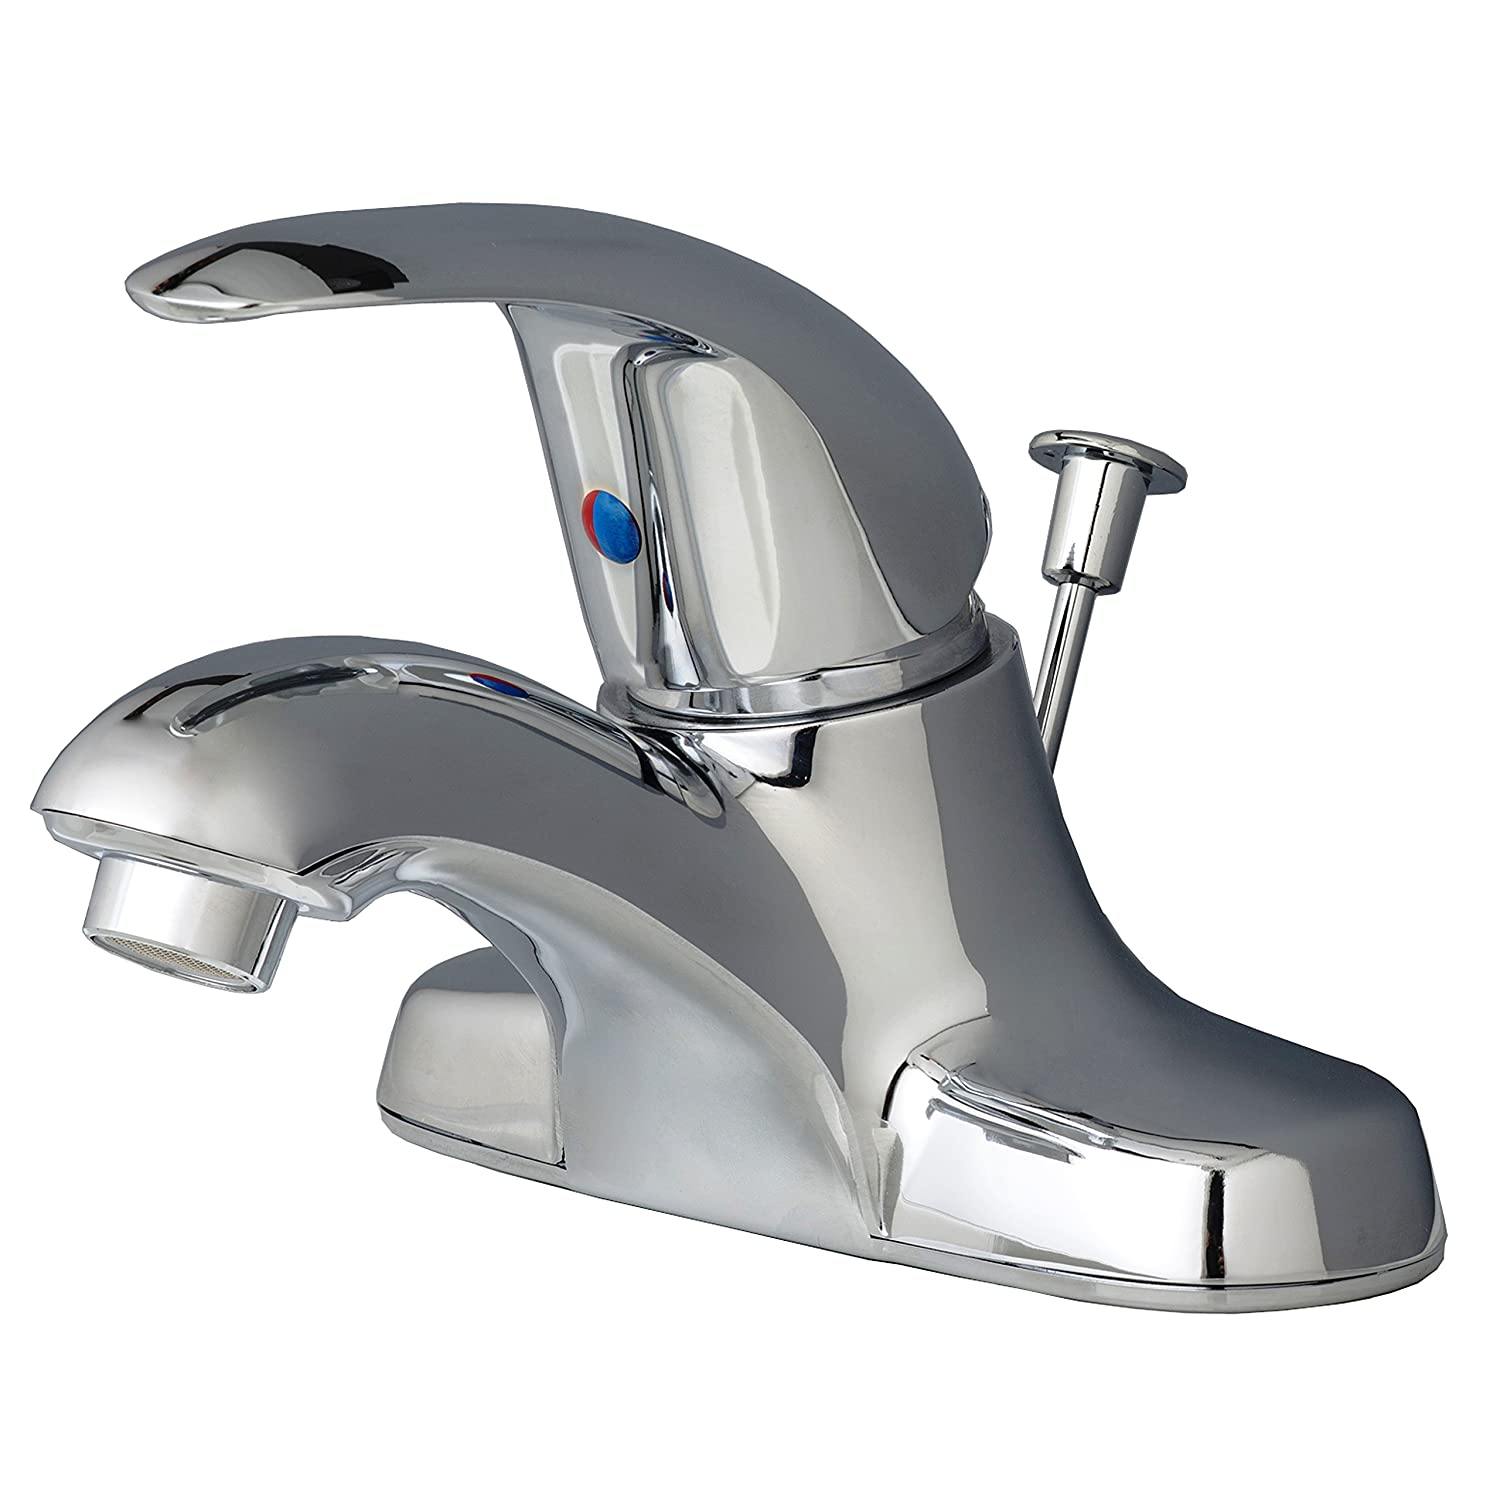 Chrome Finish Builders Shoppe 2041BN Single Handle Centerset Lavatory Faucet with Pop-Up Drain, Brushed Nickel Finish by Builders Shoppe